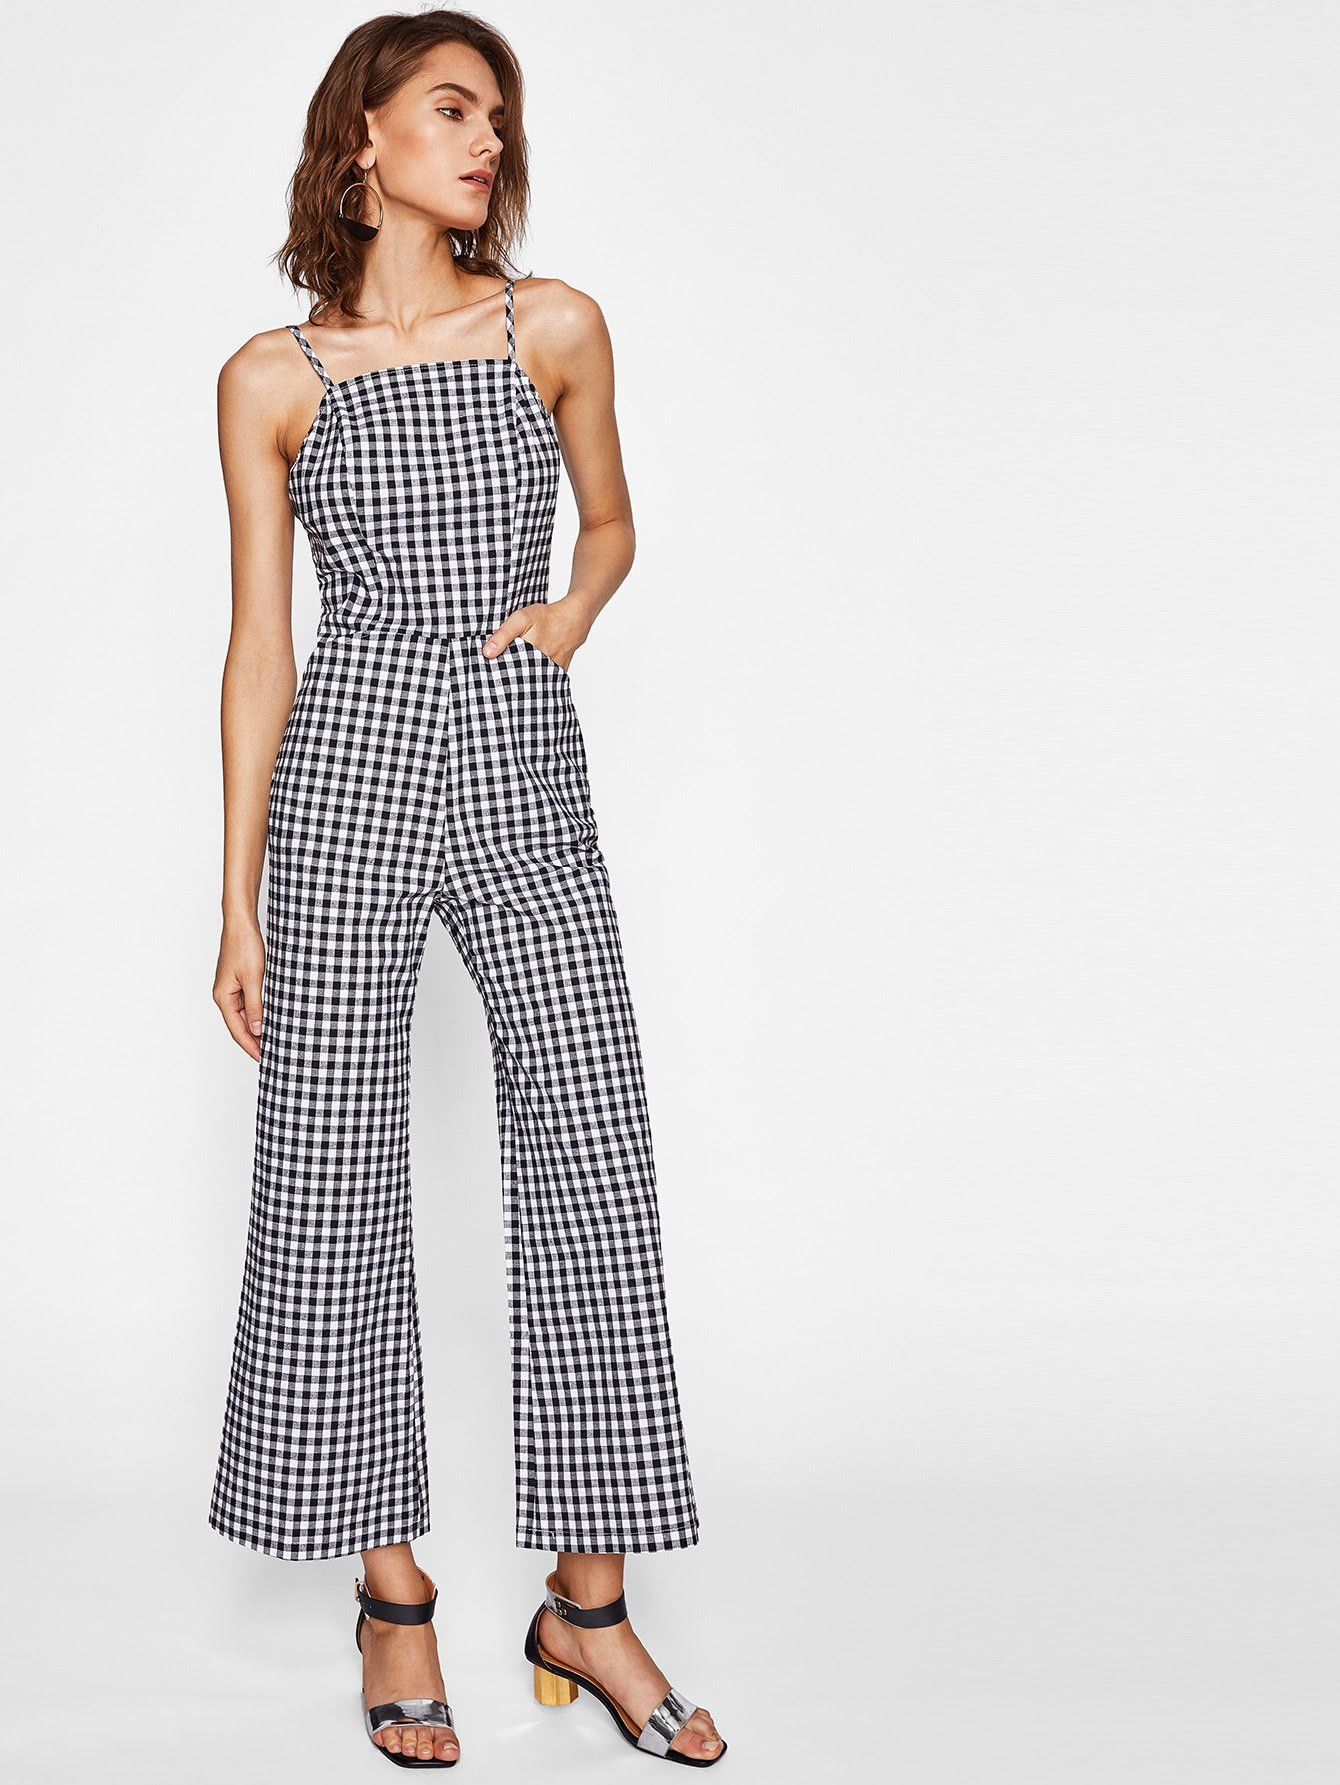 Black And White Checkered Cami Straps Sleeveless Shirred Back Gingham  Jumpsuit